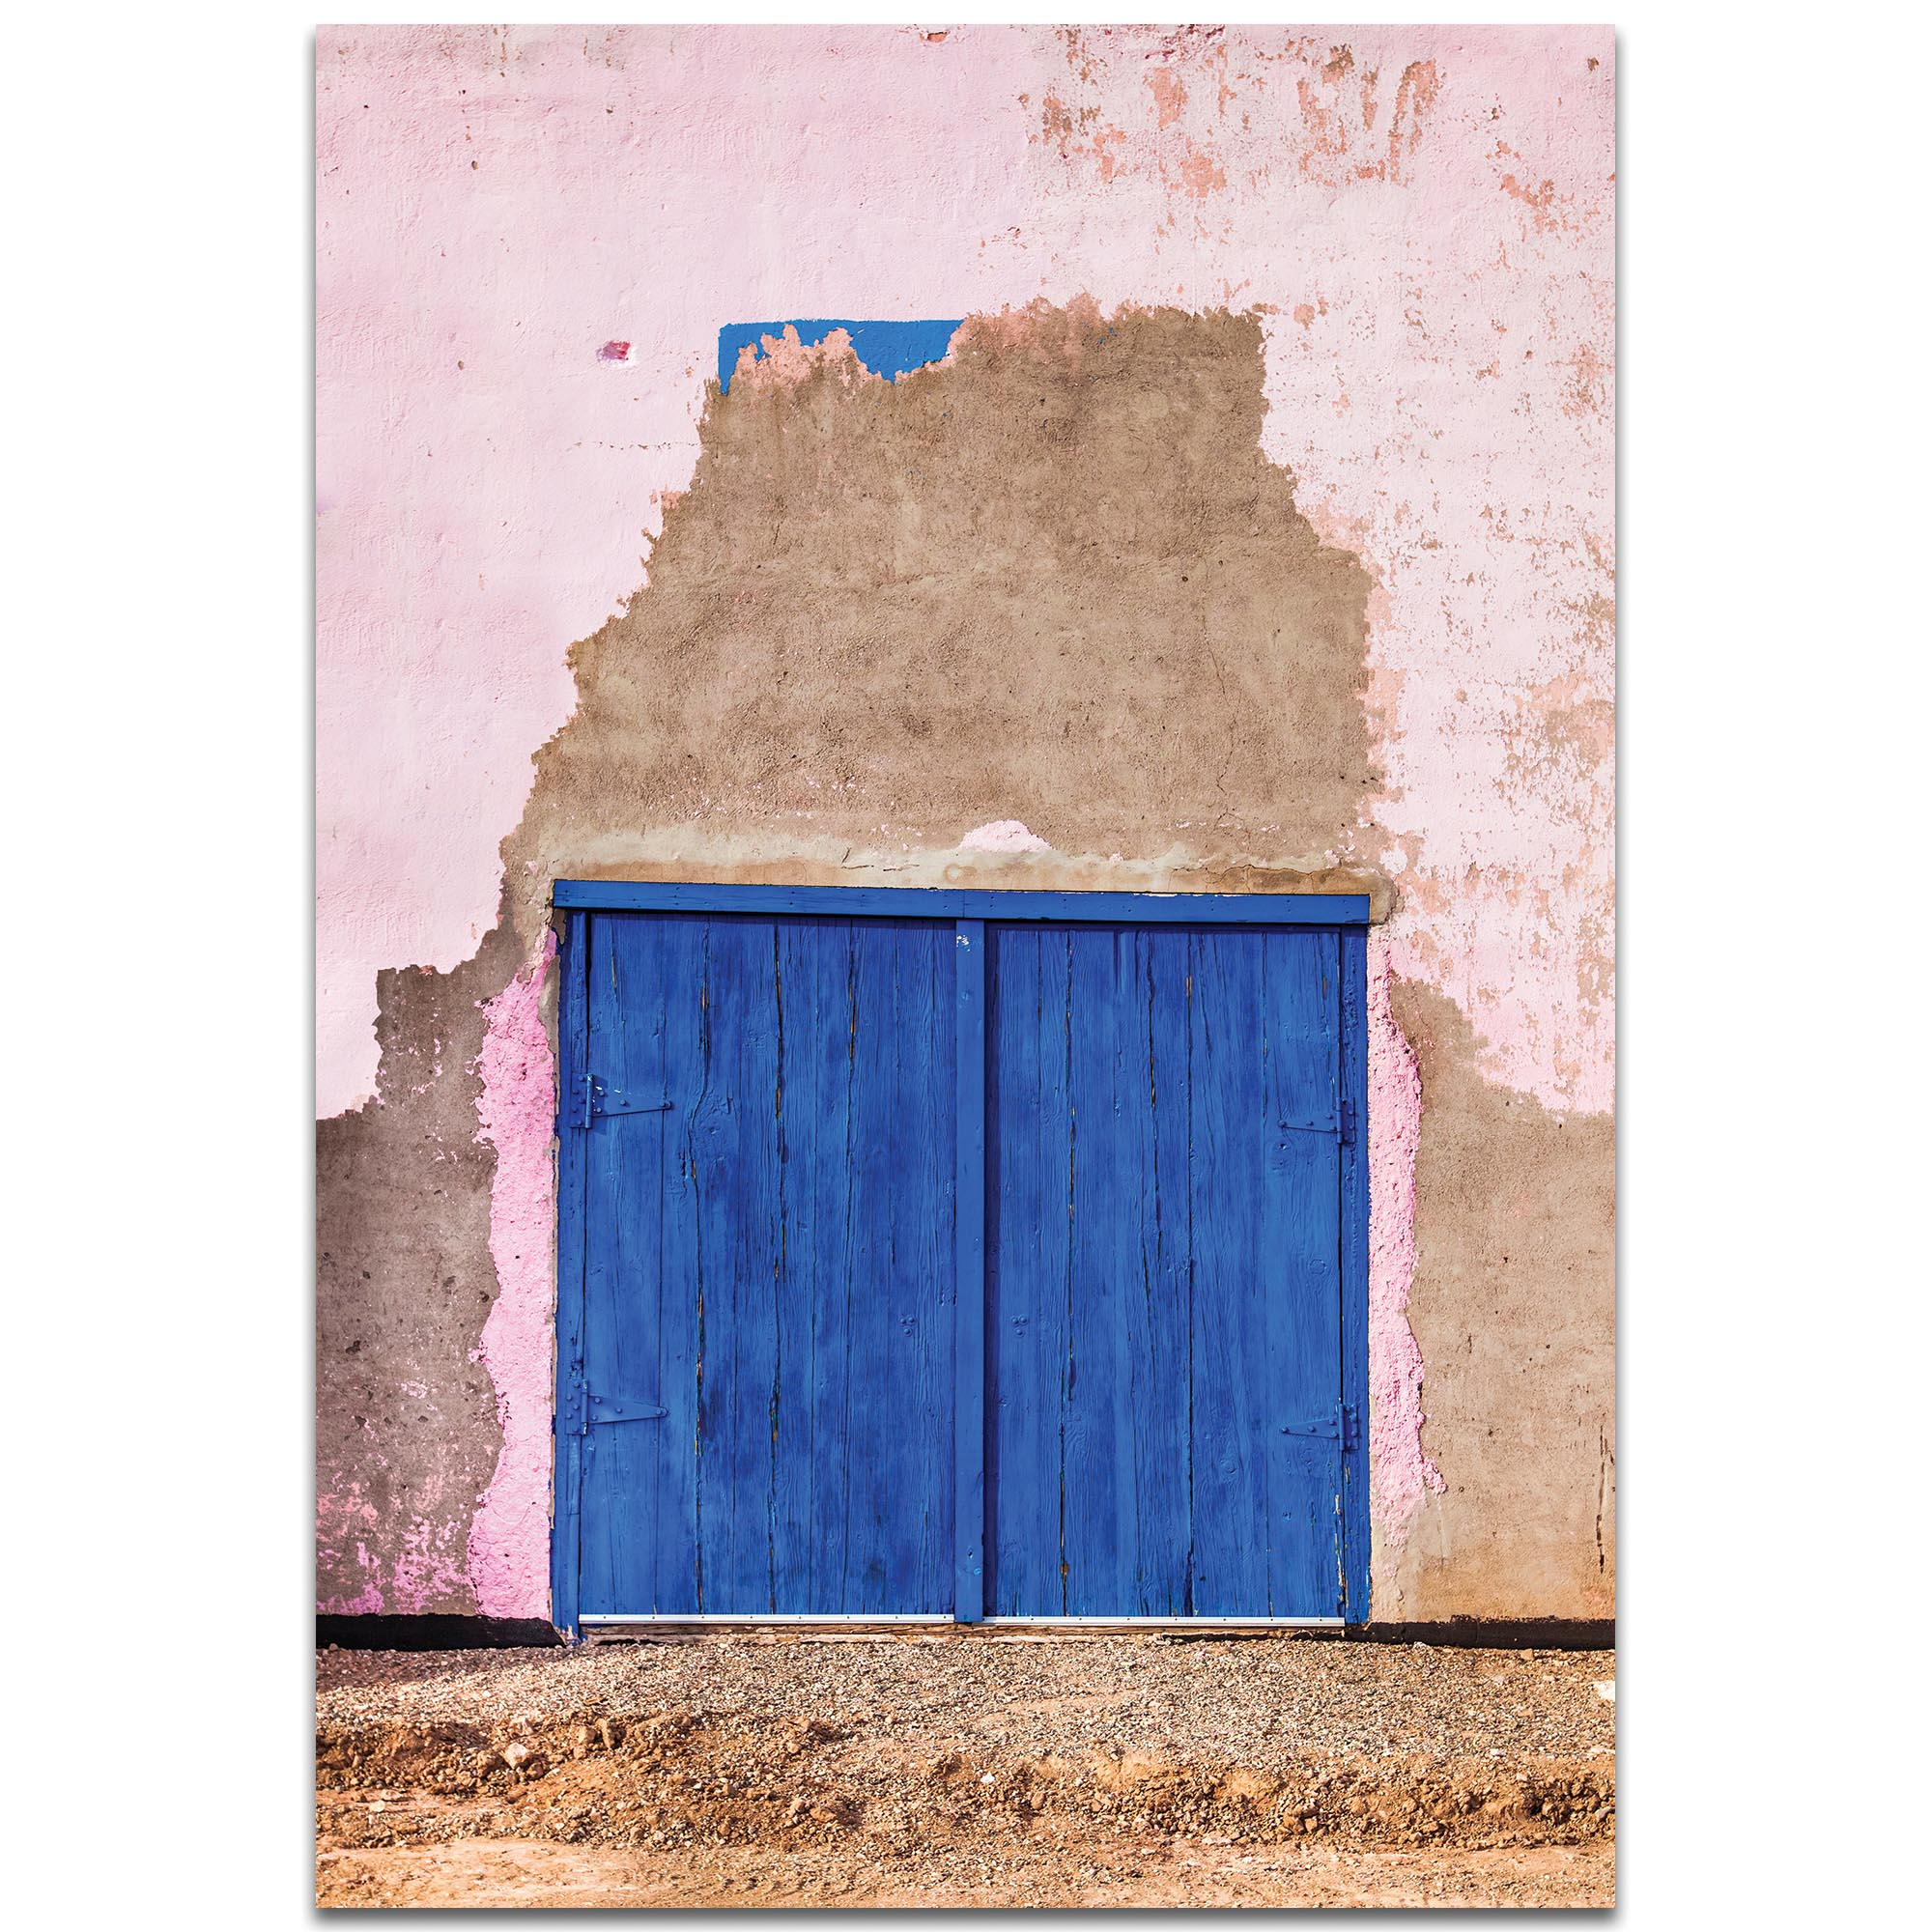 Eclectic Wall Art 'Blue Double Door' - Architecture Decor on Metal or Plexiglass